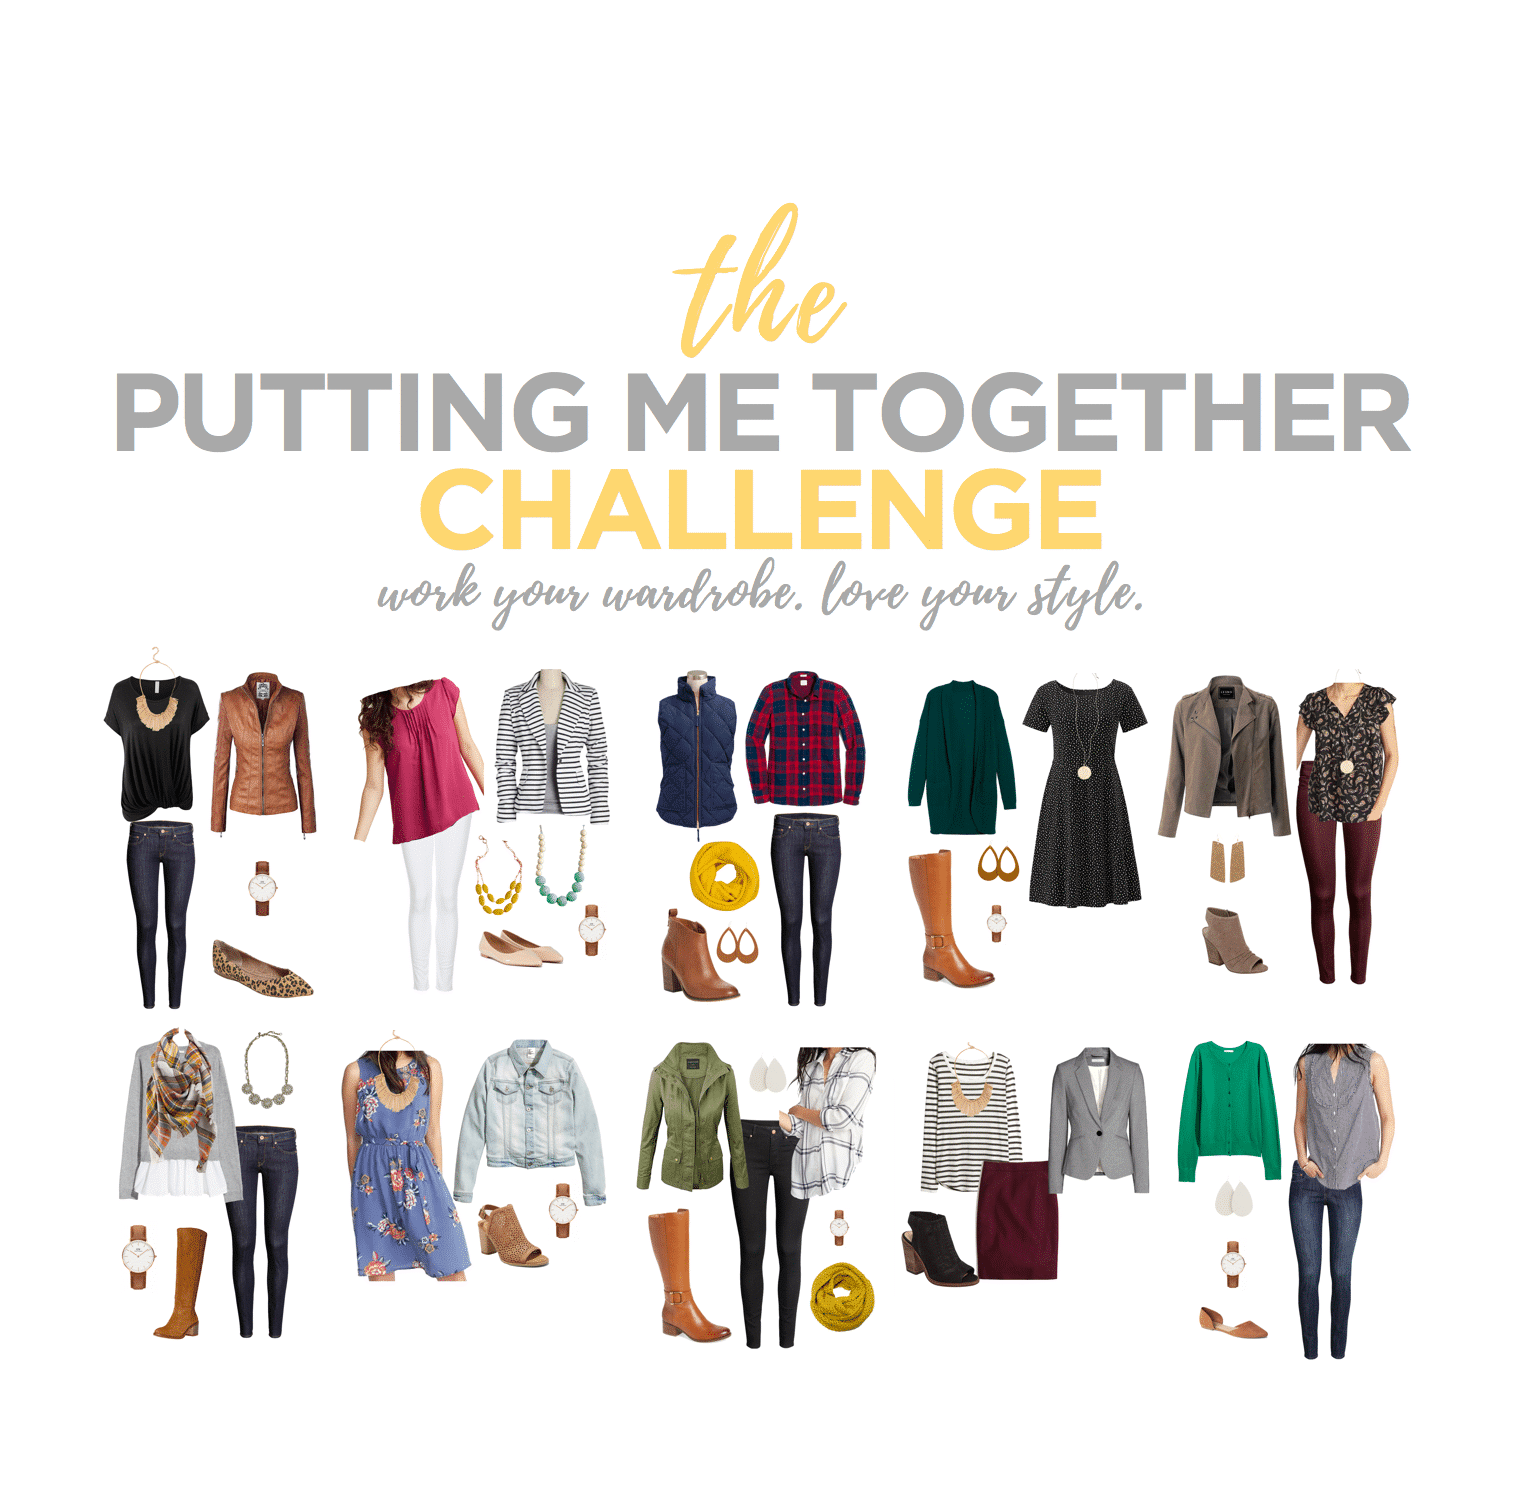 The Putting Me Together Challenge: Build a Mix-and-Match Wardrobe